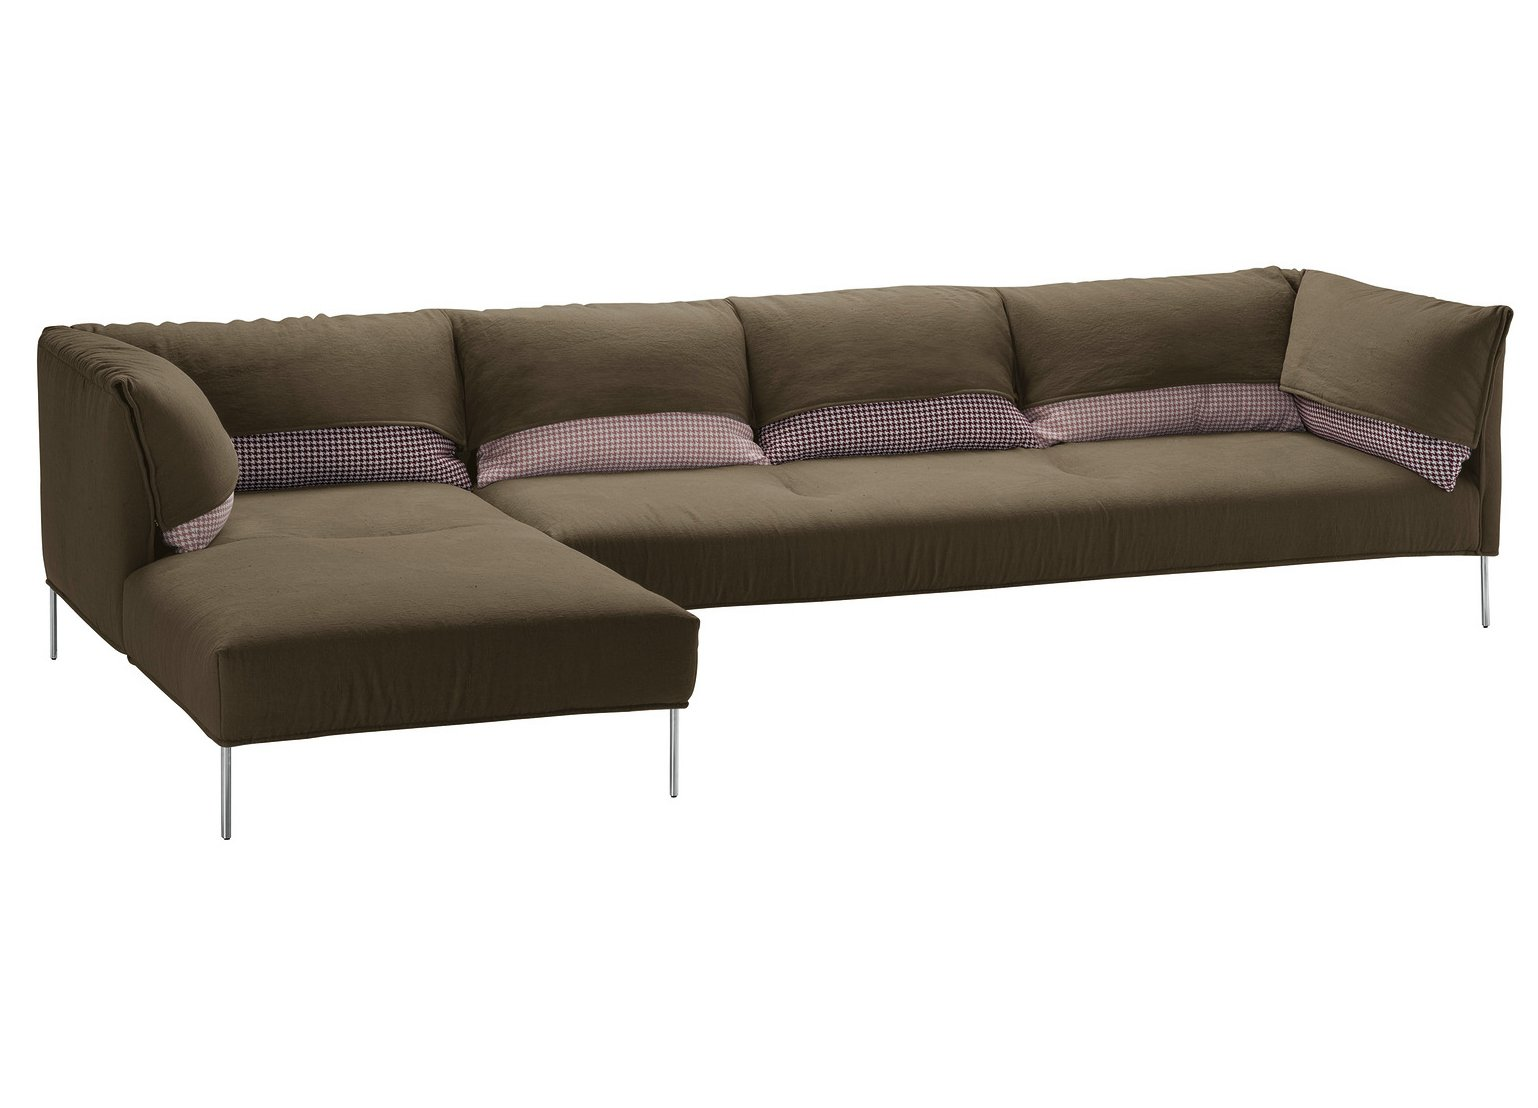 sectional sofa with removable covers   Sofa with removable cover UNDERCOVER by Zanotta design ...